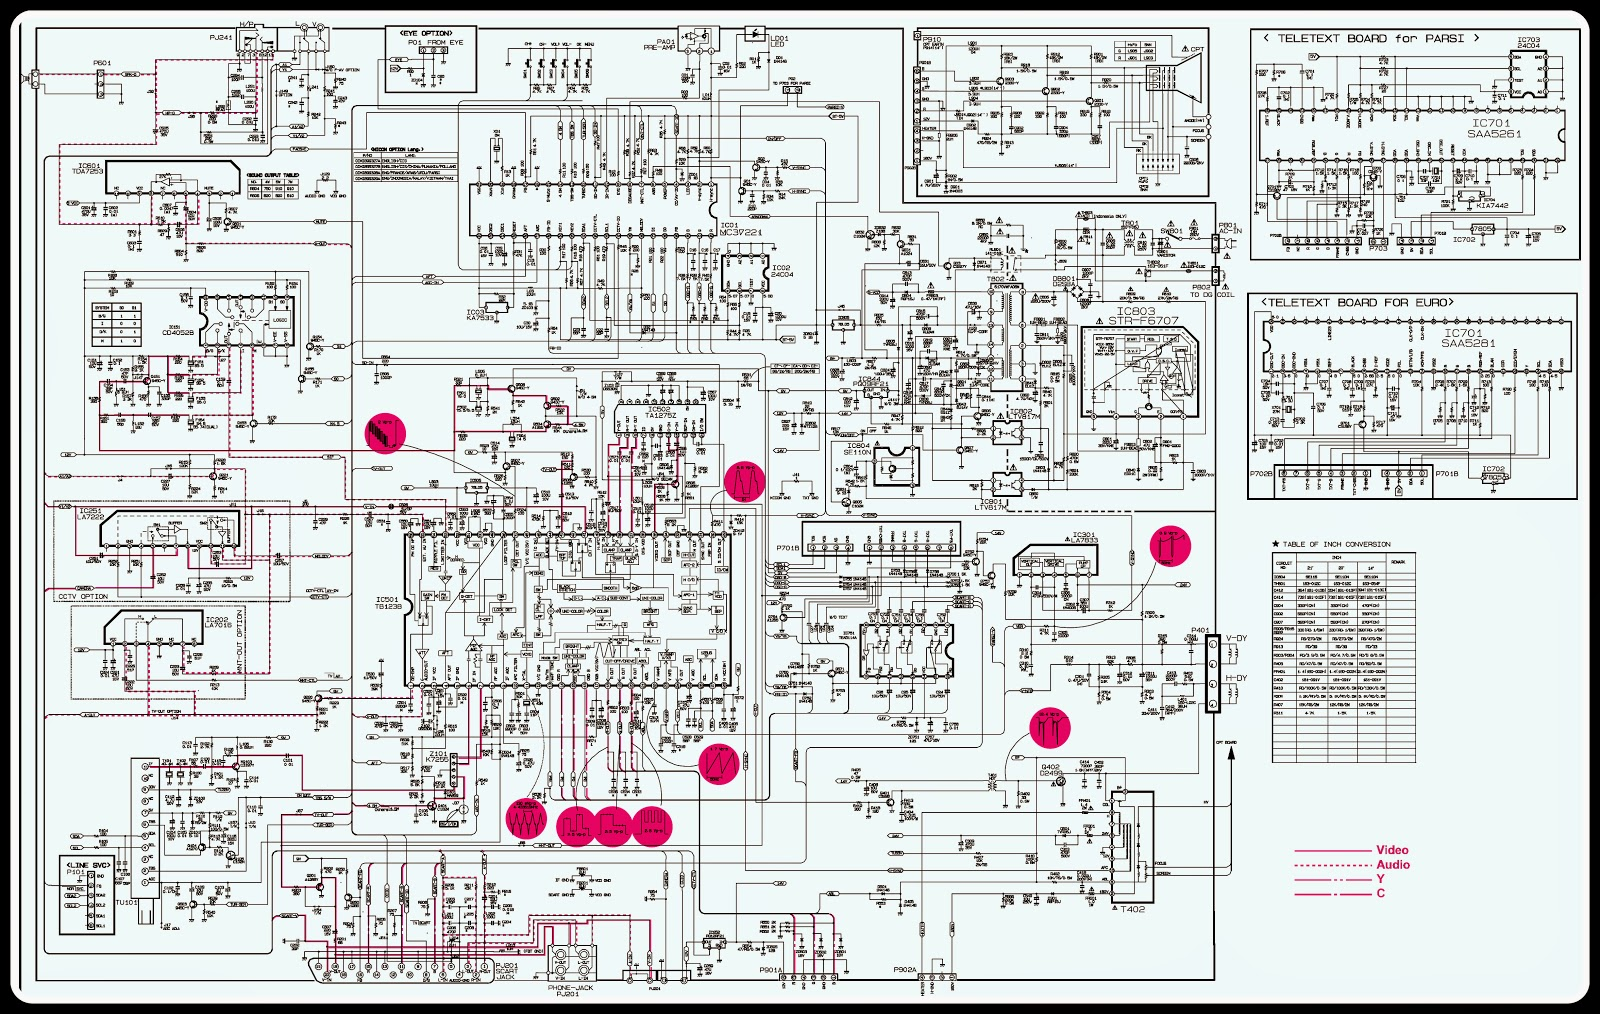 sanyo tv wiring diagram wiring diagram dat sanyo tv wiring diagram [ 1600 x 1014 Pixel ]